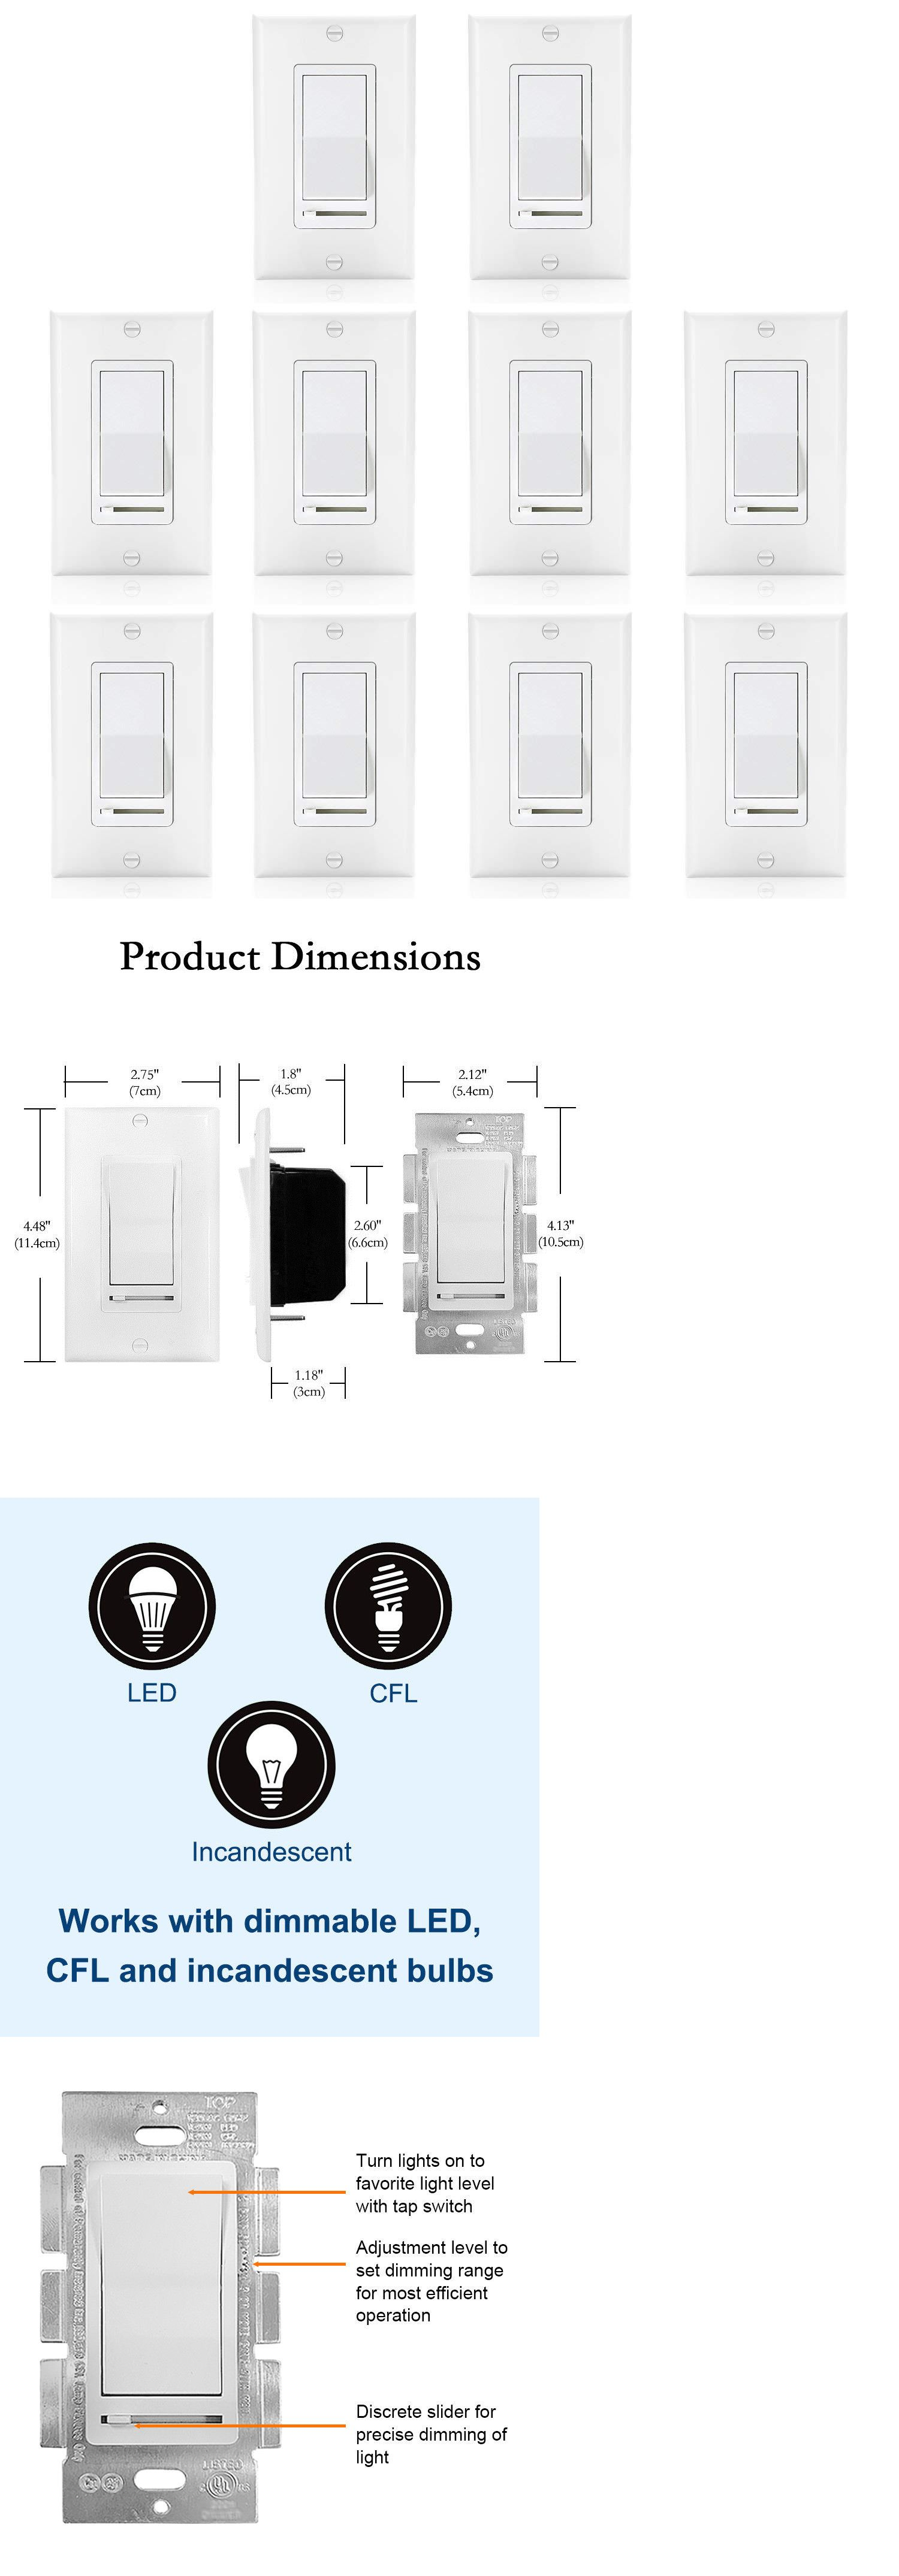 Dimmers 41984 10 Pack 150w Led And Cfl 600w Incandescent Wall Light Switch Slide Dimmer Switch Buy It Now Only 11 Dimmer Switch Dimmable Led Light Switch